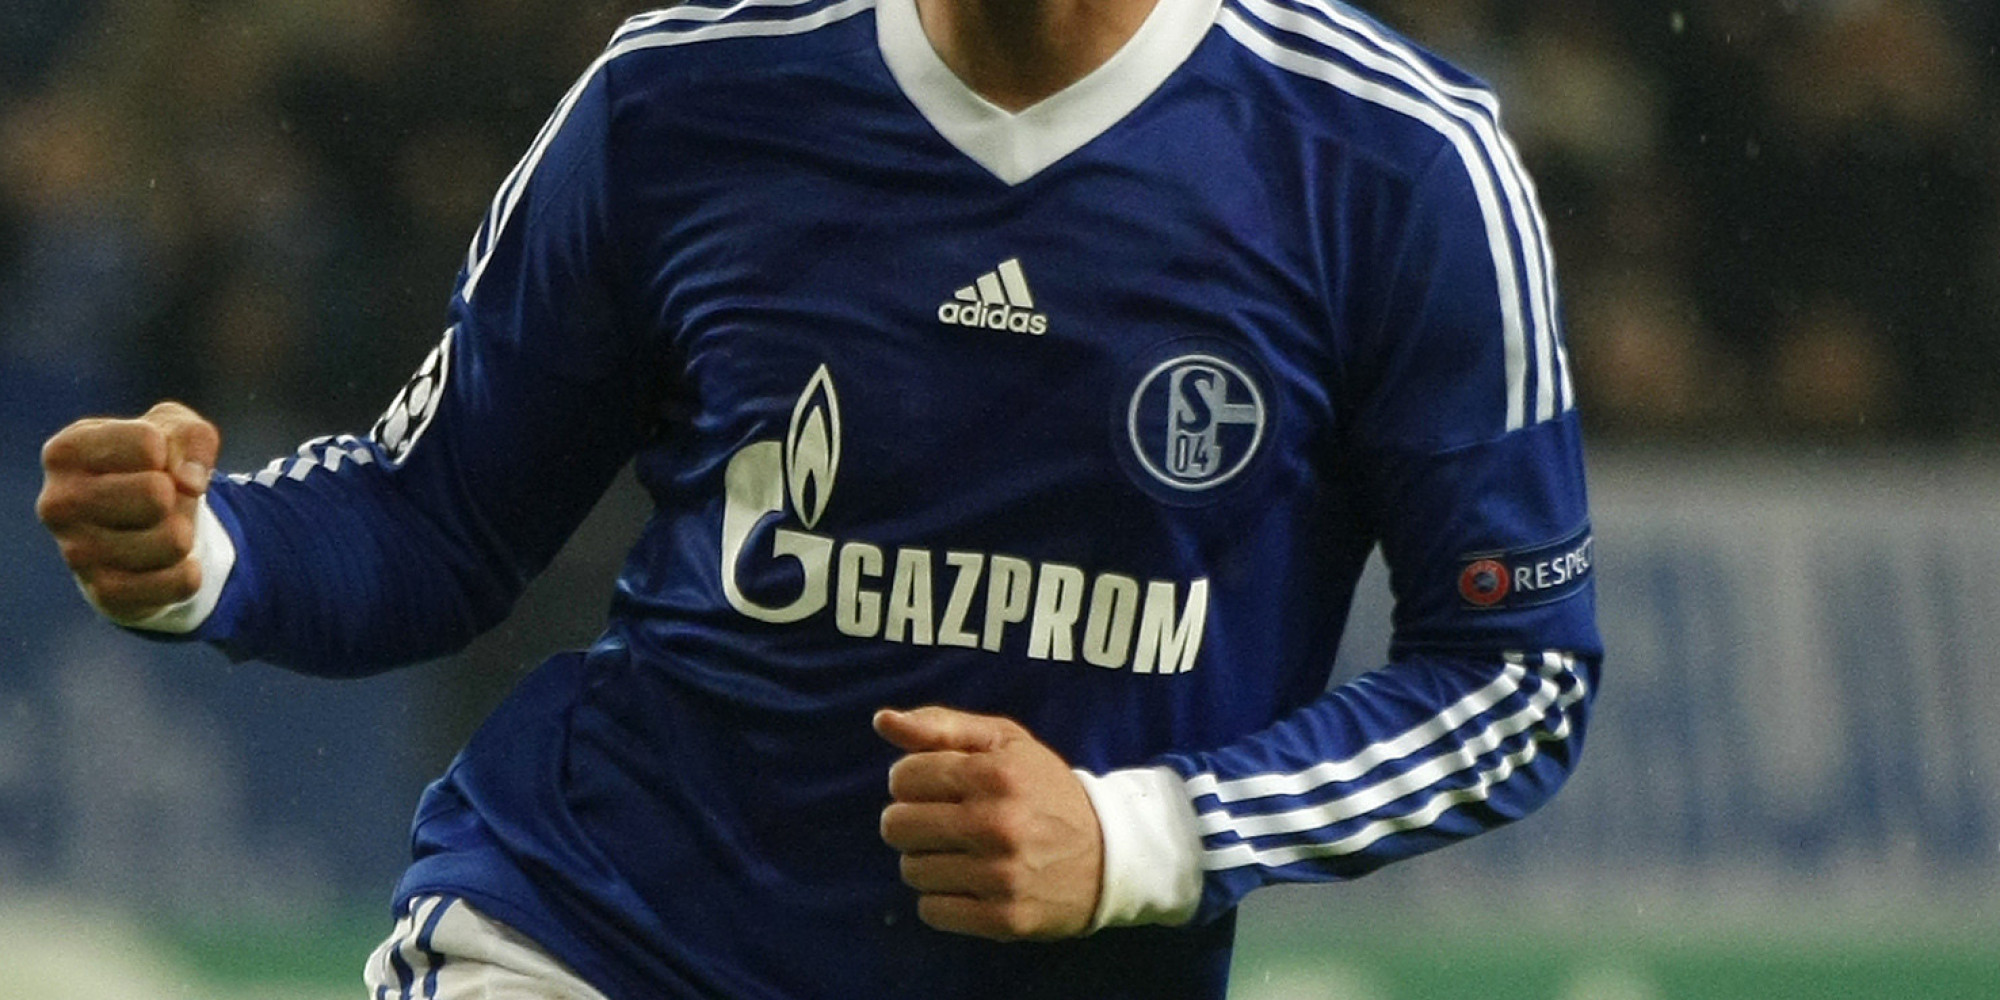 Gazprom and Schalke 04 – A New Deal on the Horizon?